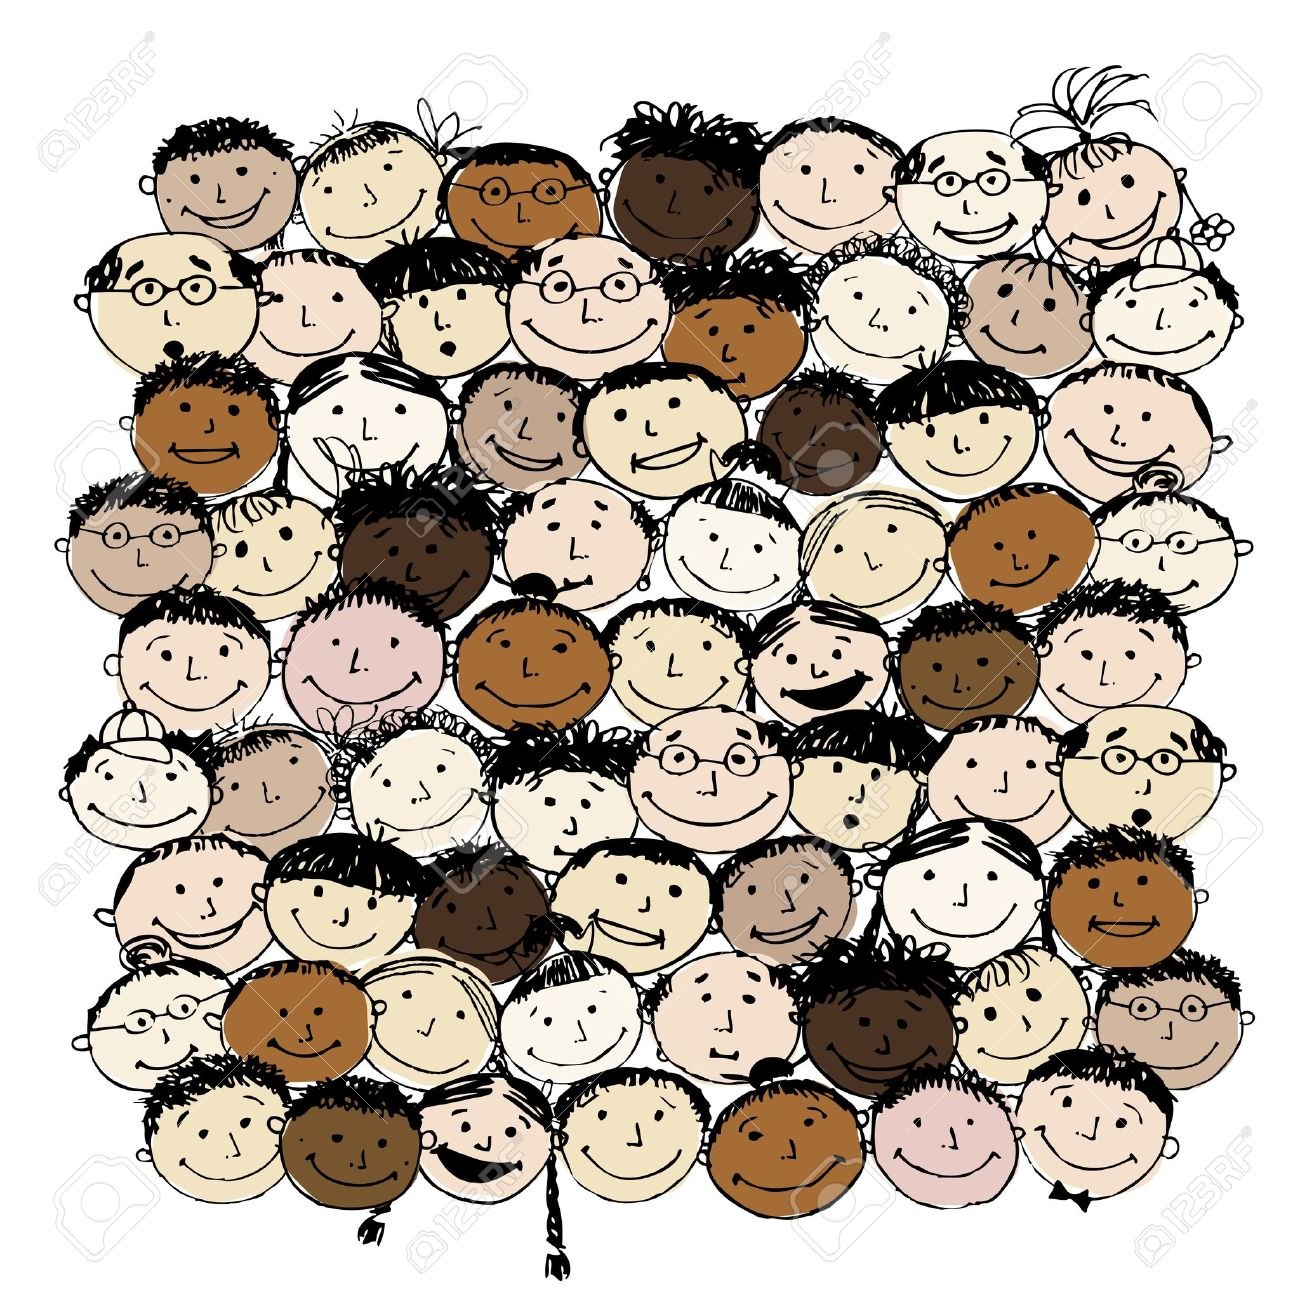 Crowd of funny peoples for your design Stock Vector - 11263944